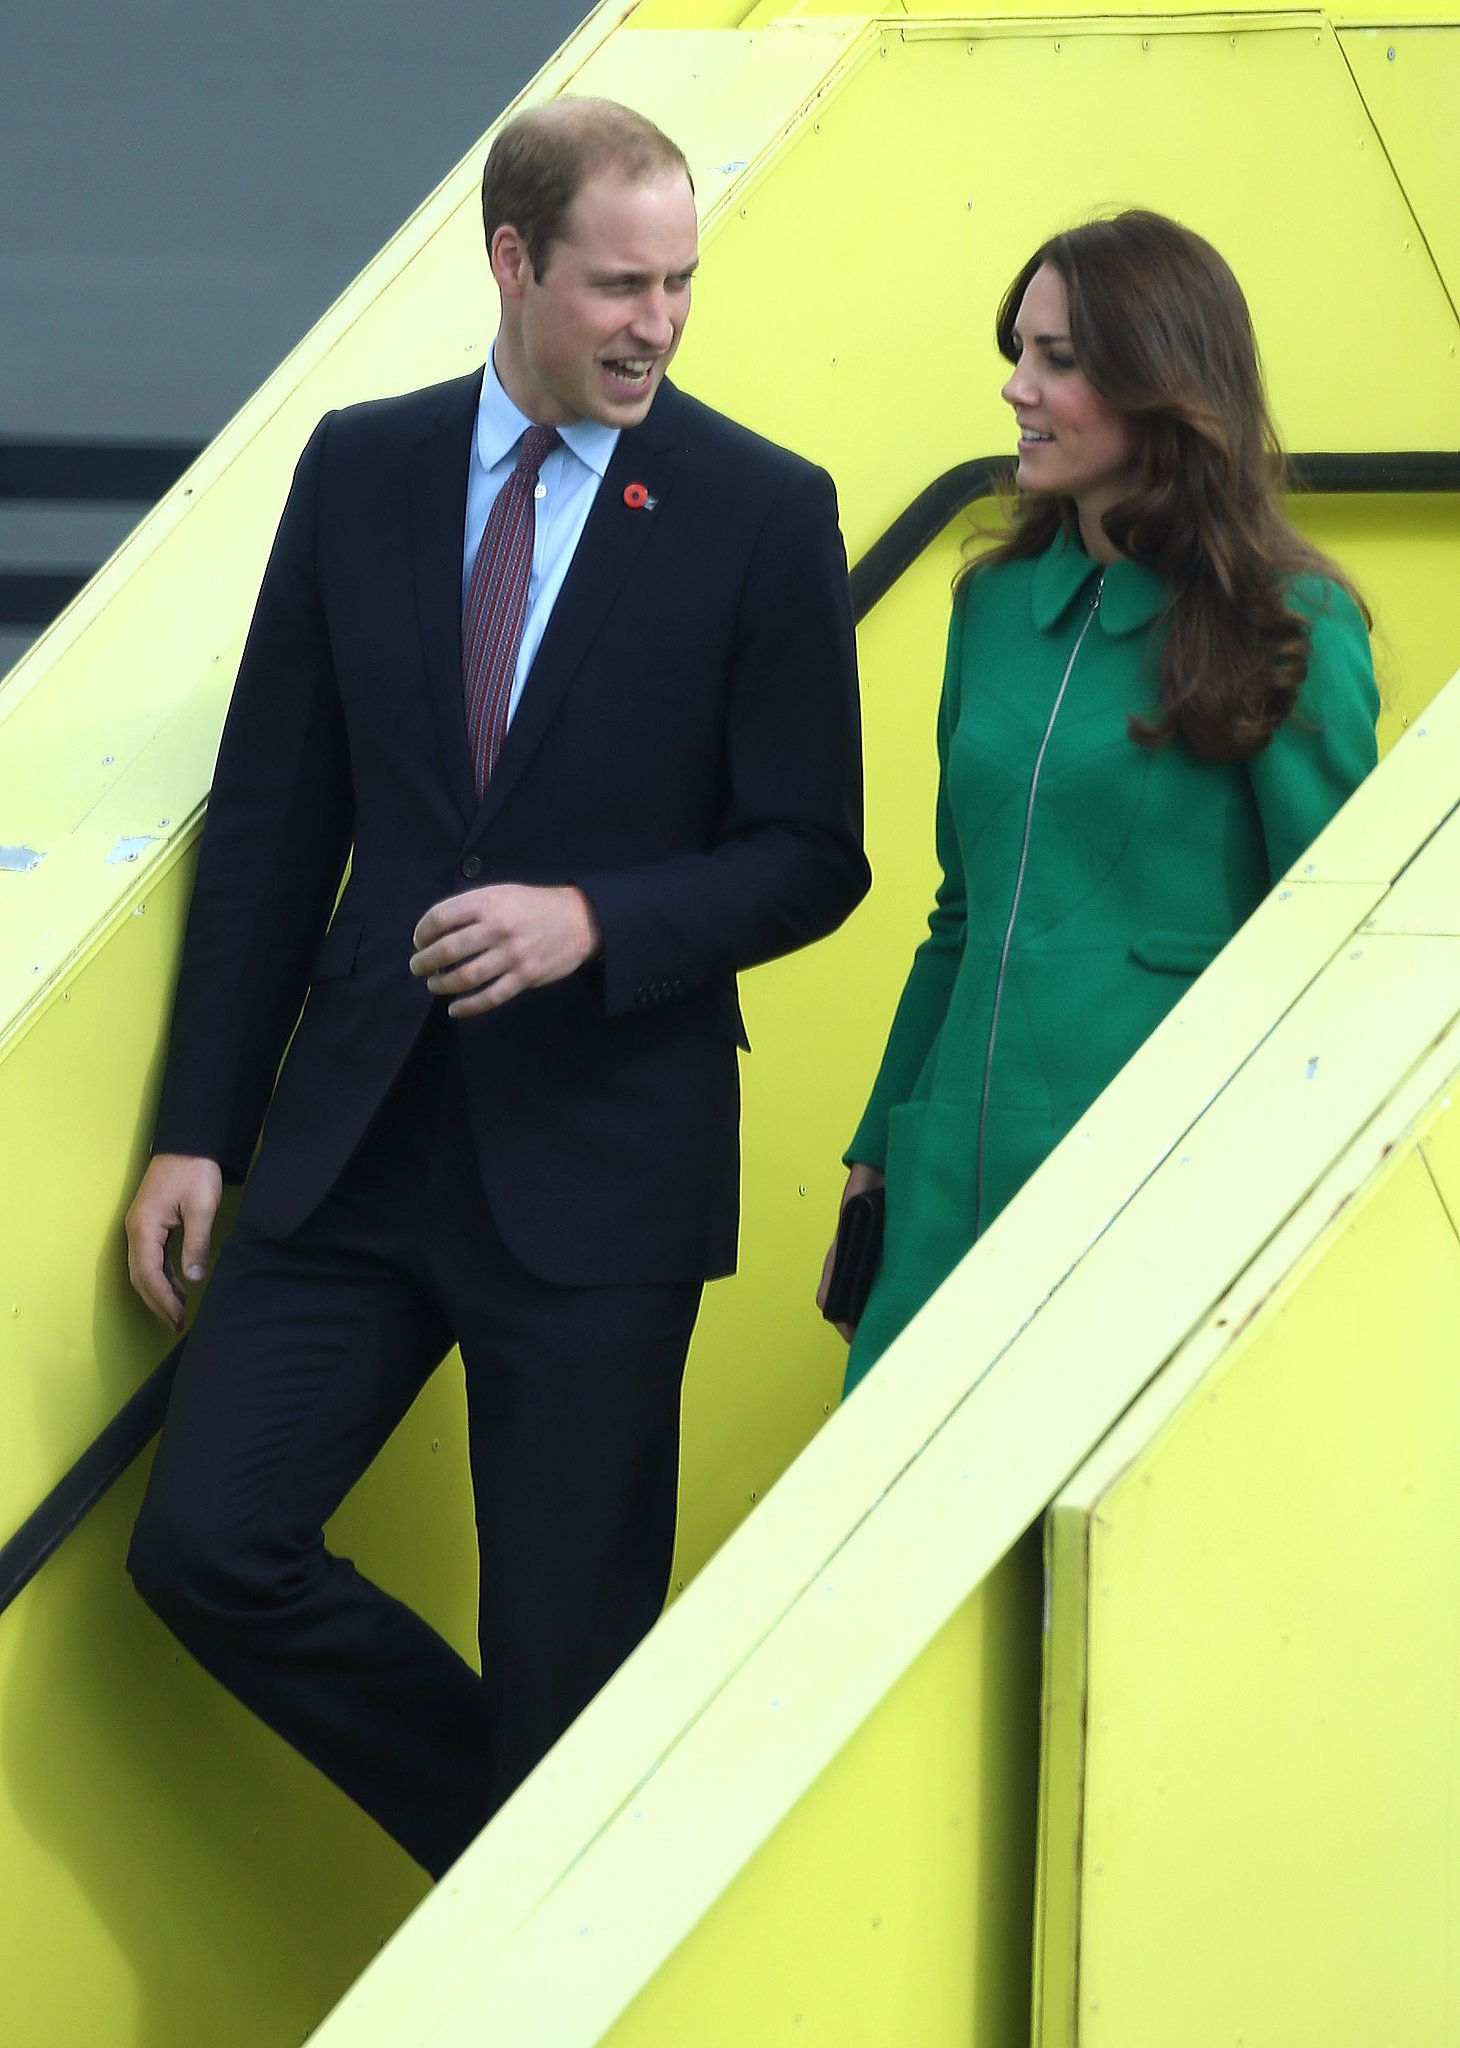 The Royals Share the Look of Love Before Solo Outings